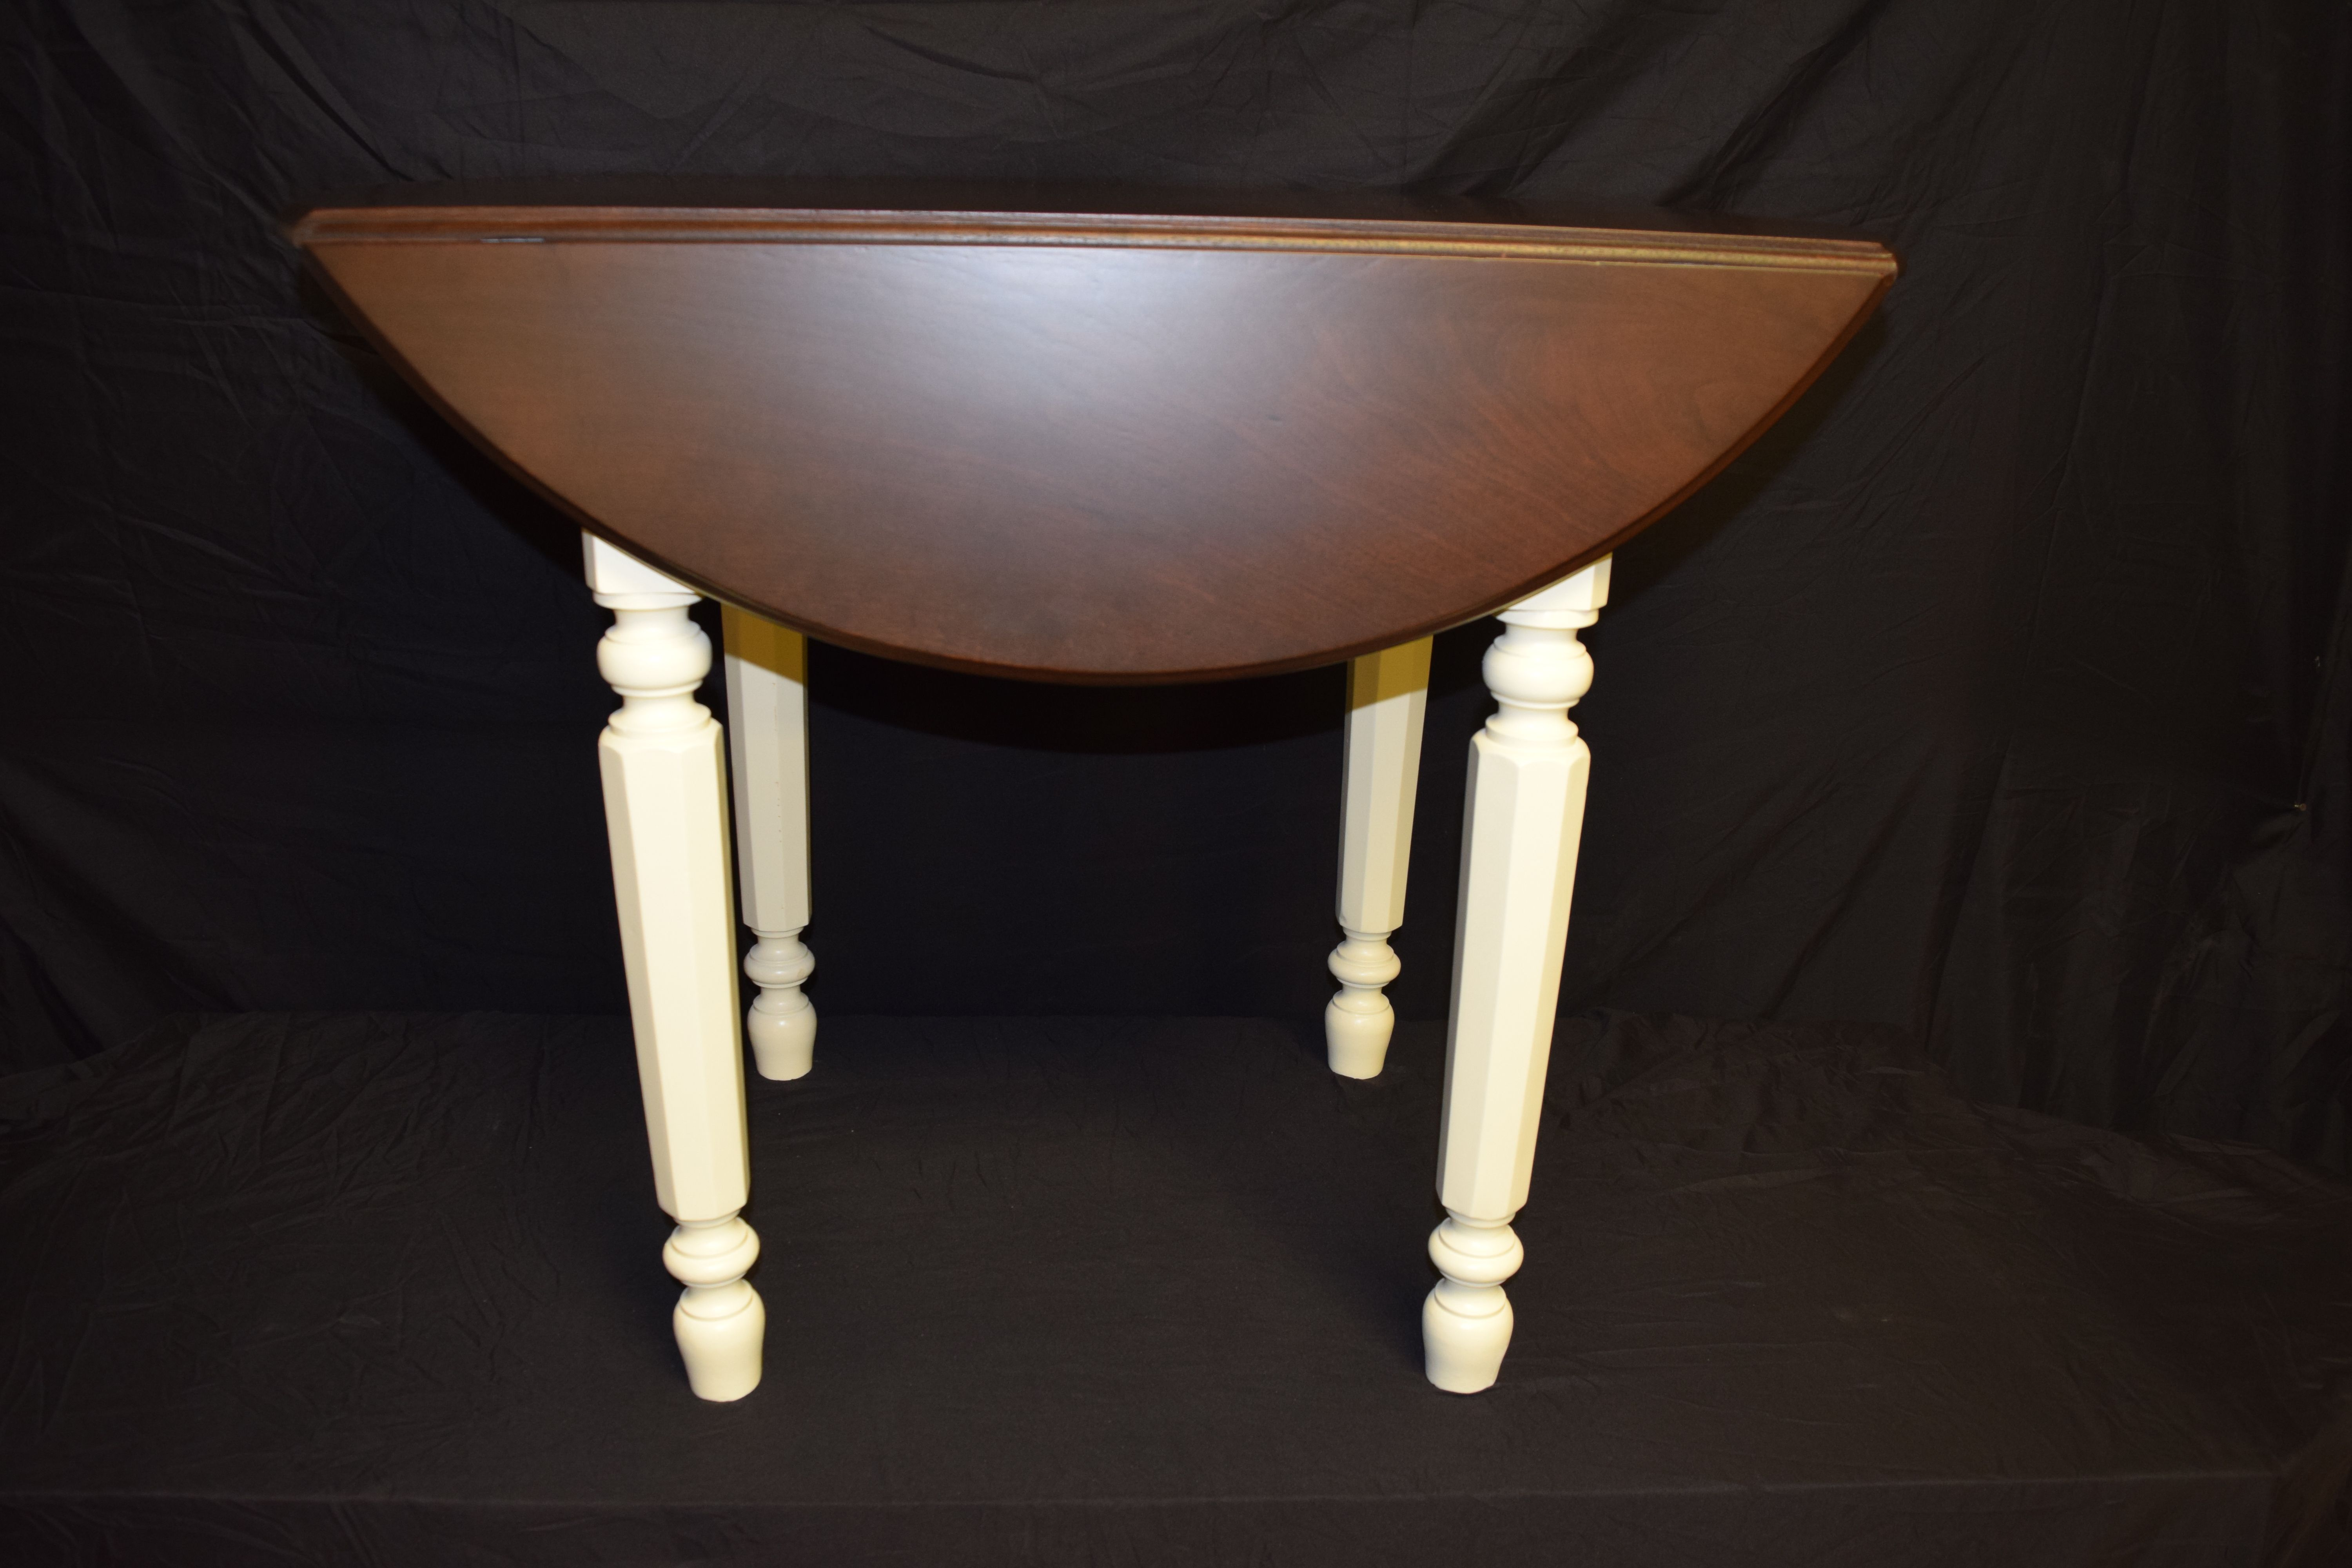 Buy a Custom Walnut Top Drop Leaf Table, made to order from Steddy